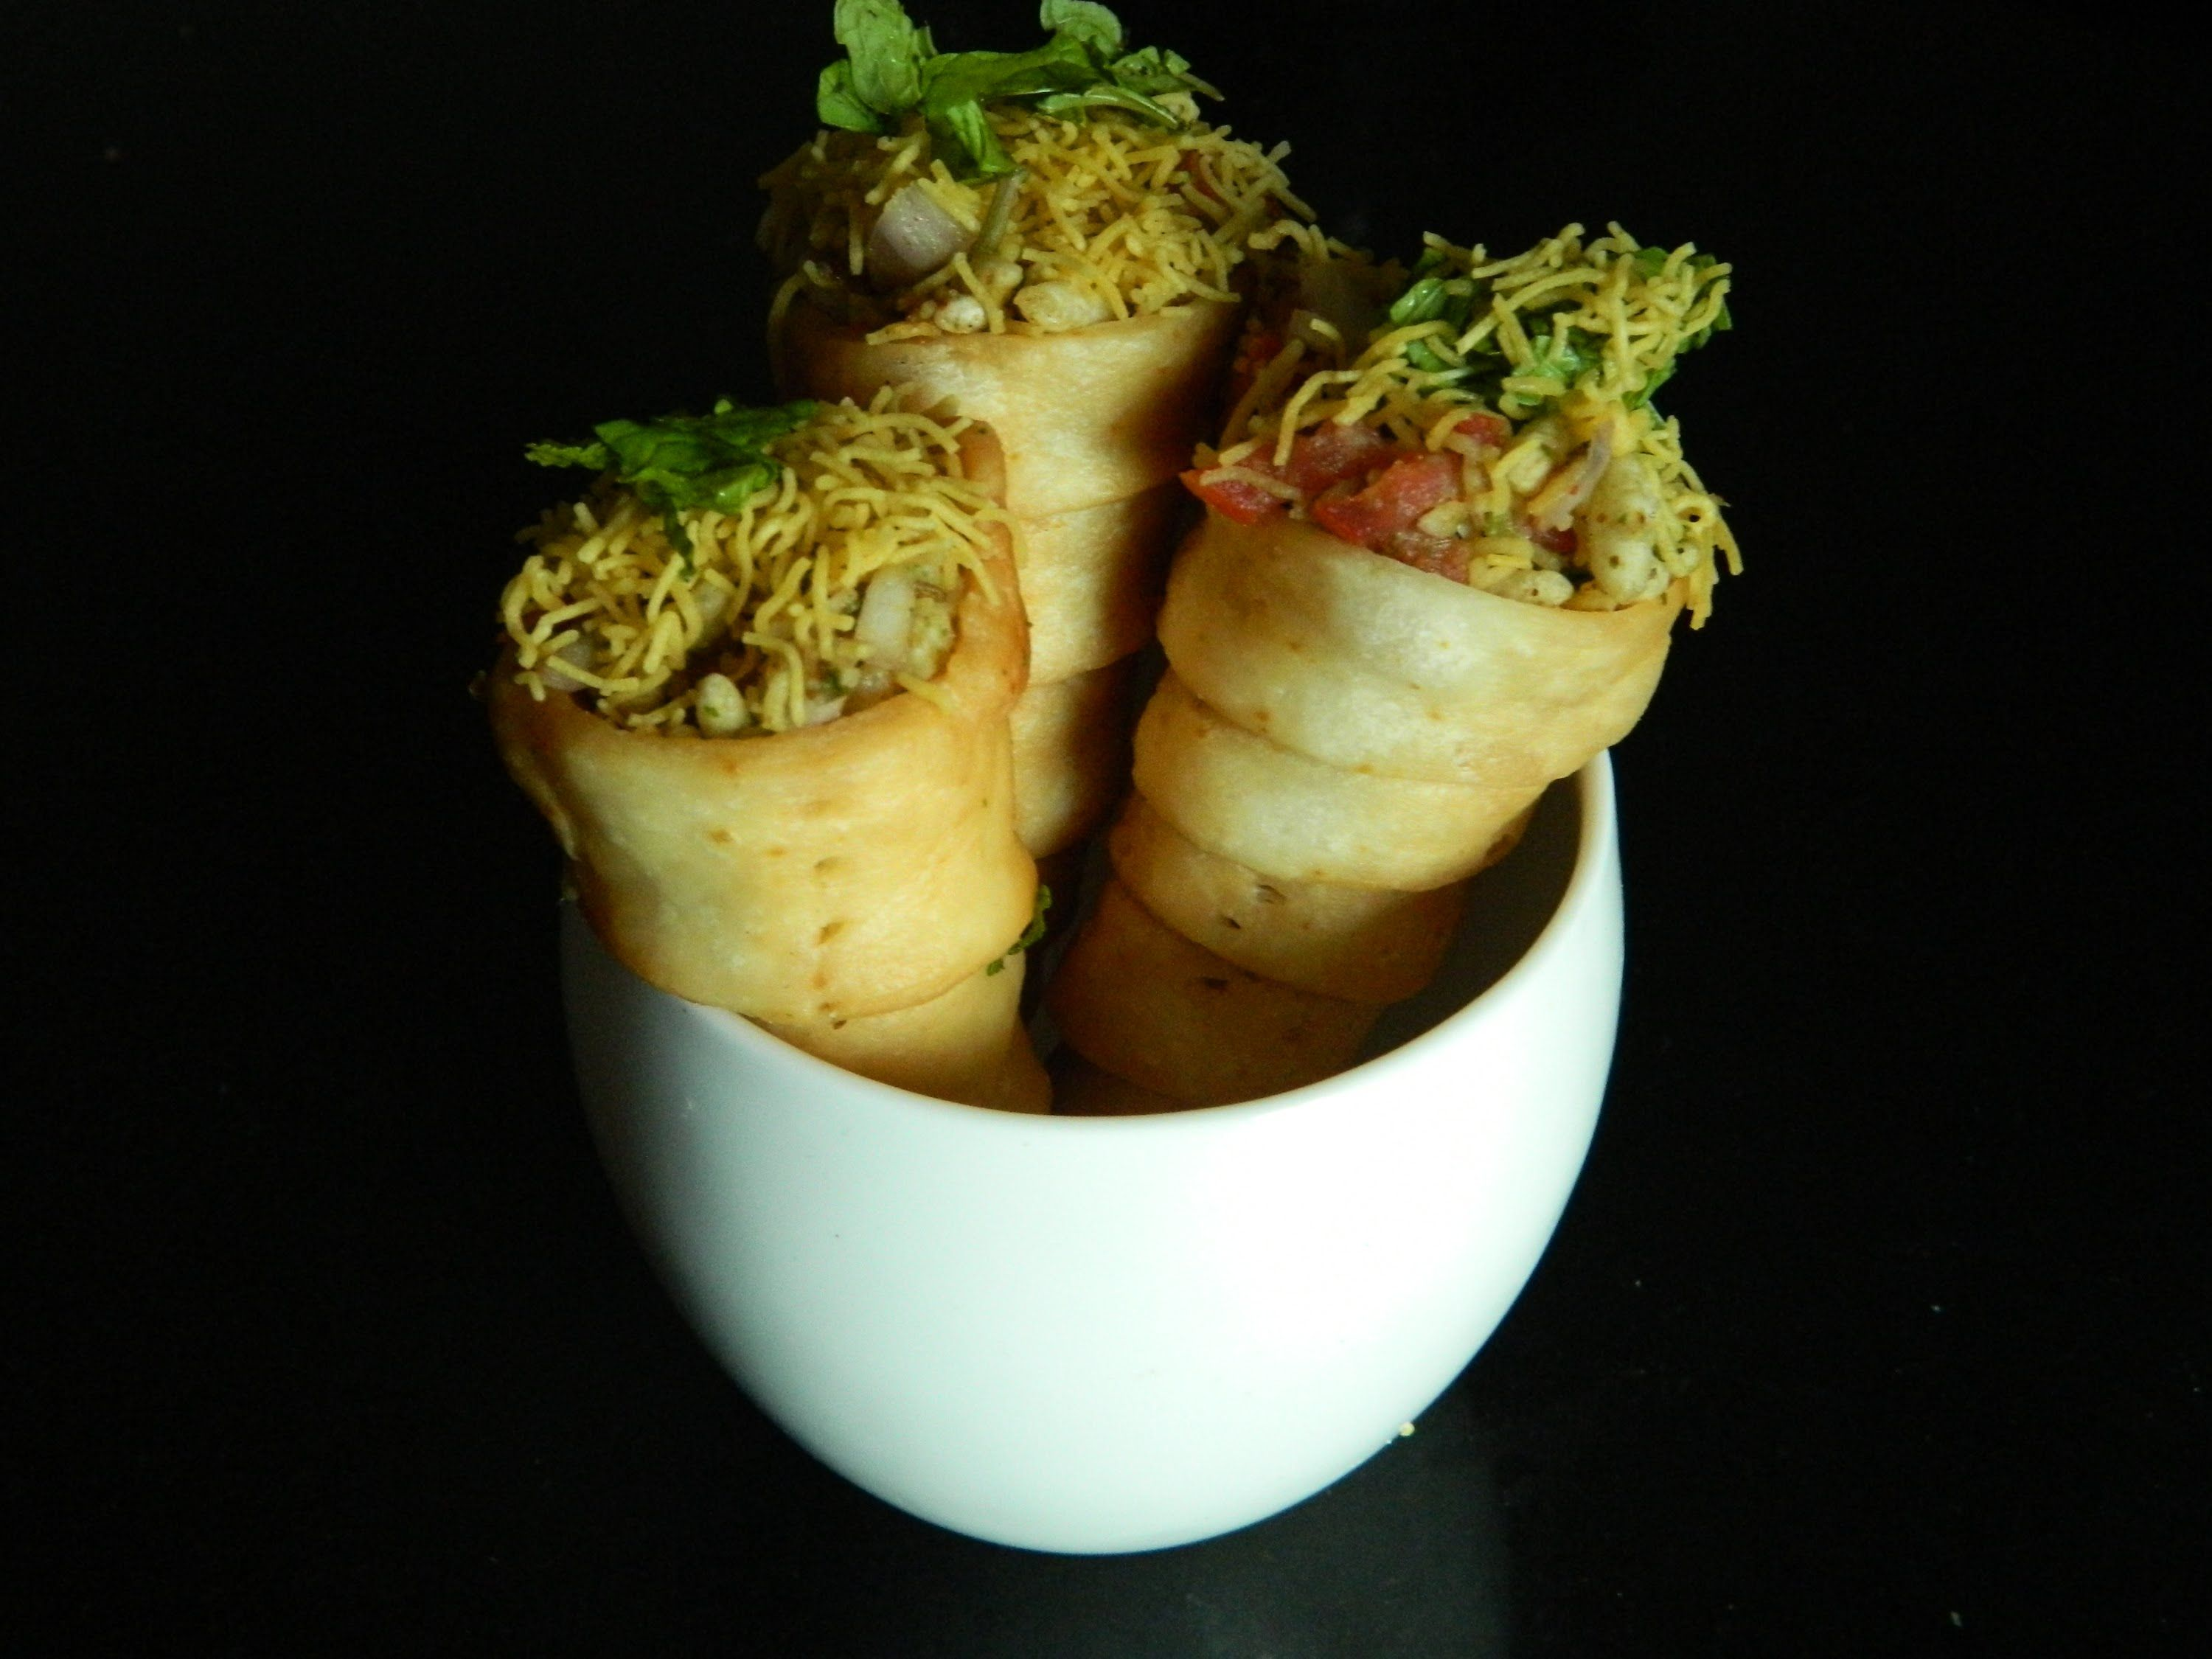 Typical indian street food chaat served in a new way chaat is typical indian street food chaat served in a new way chaat is forumfinder Images